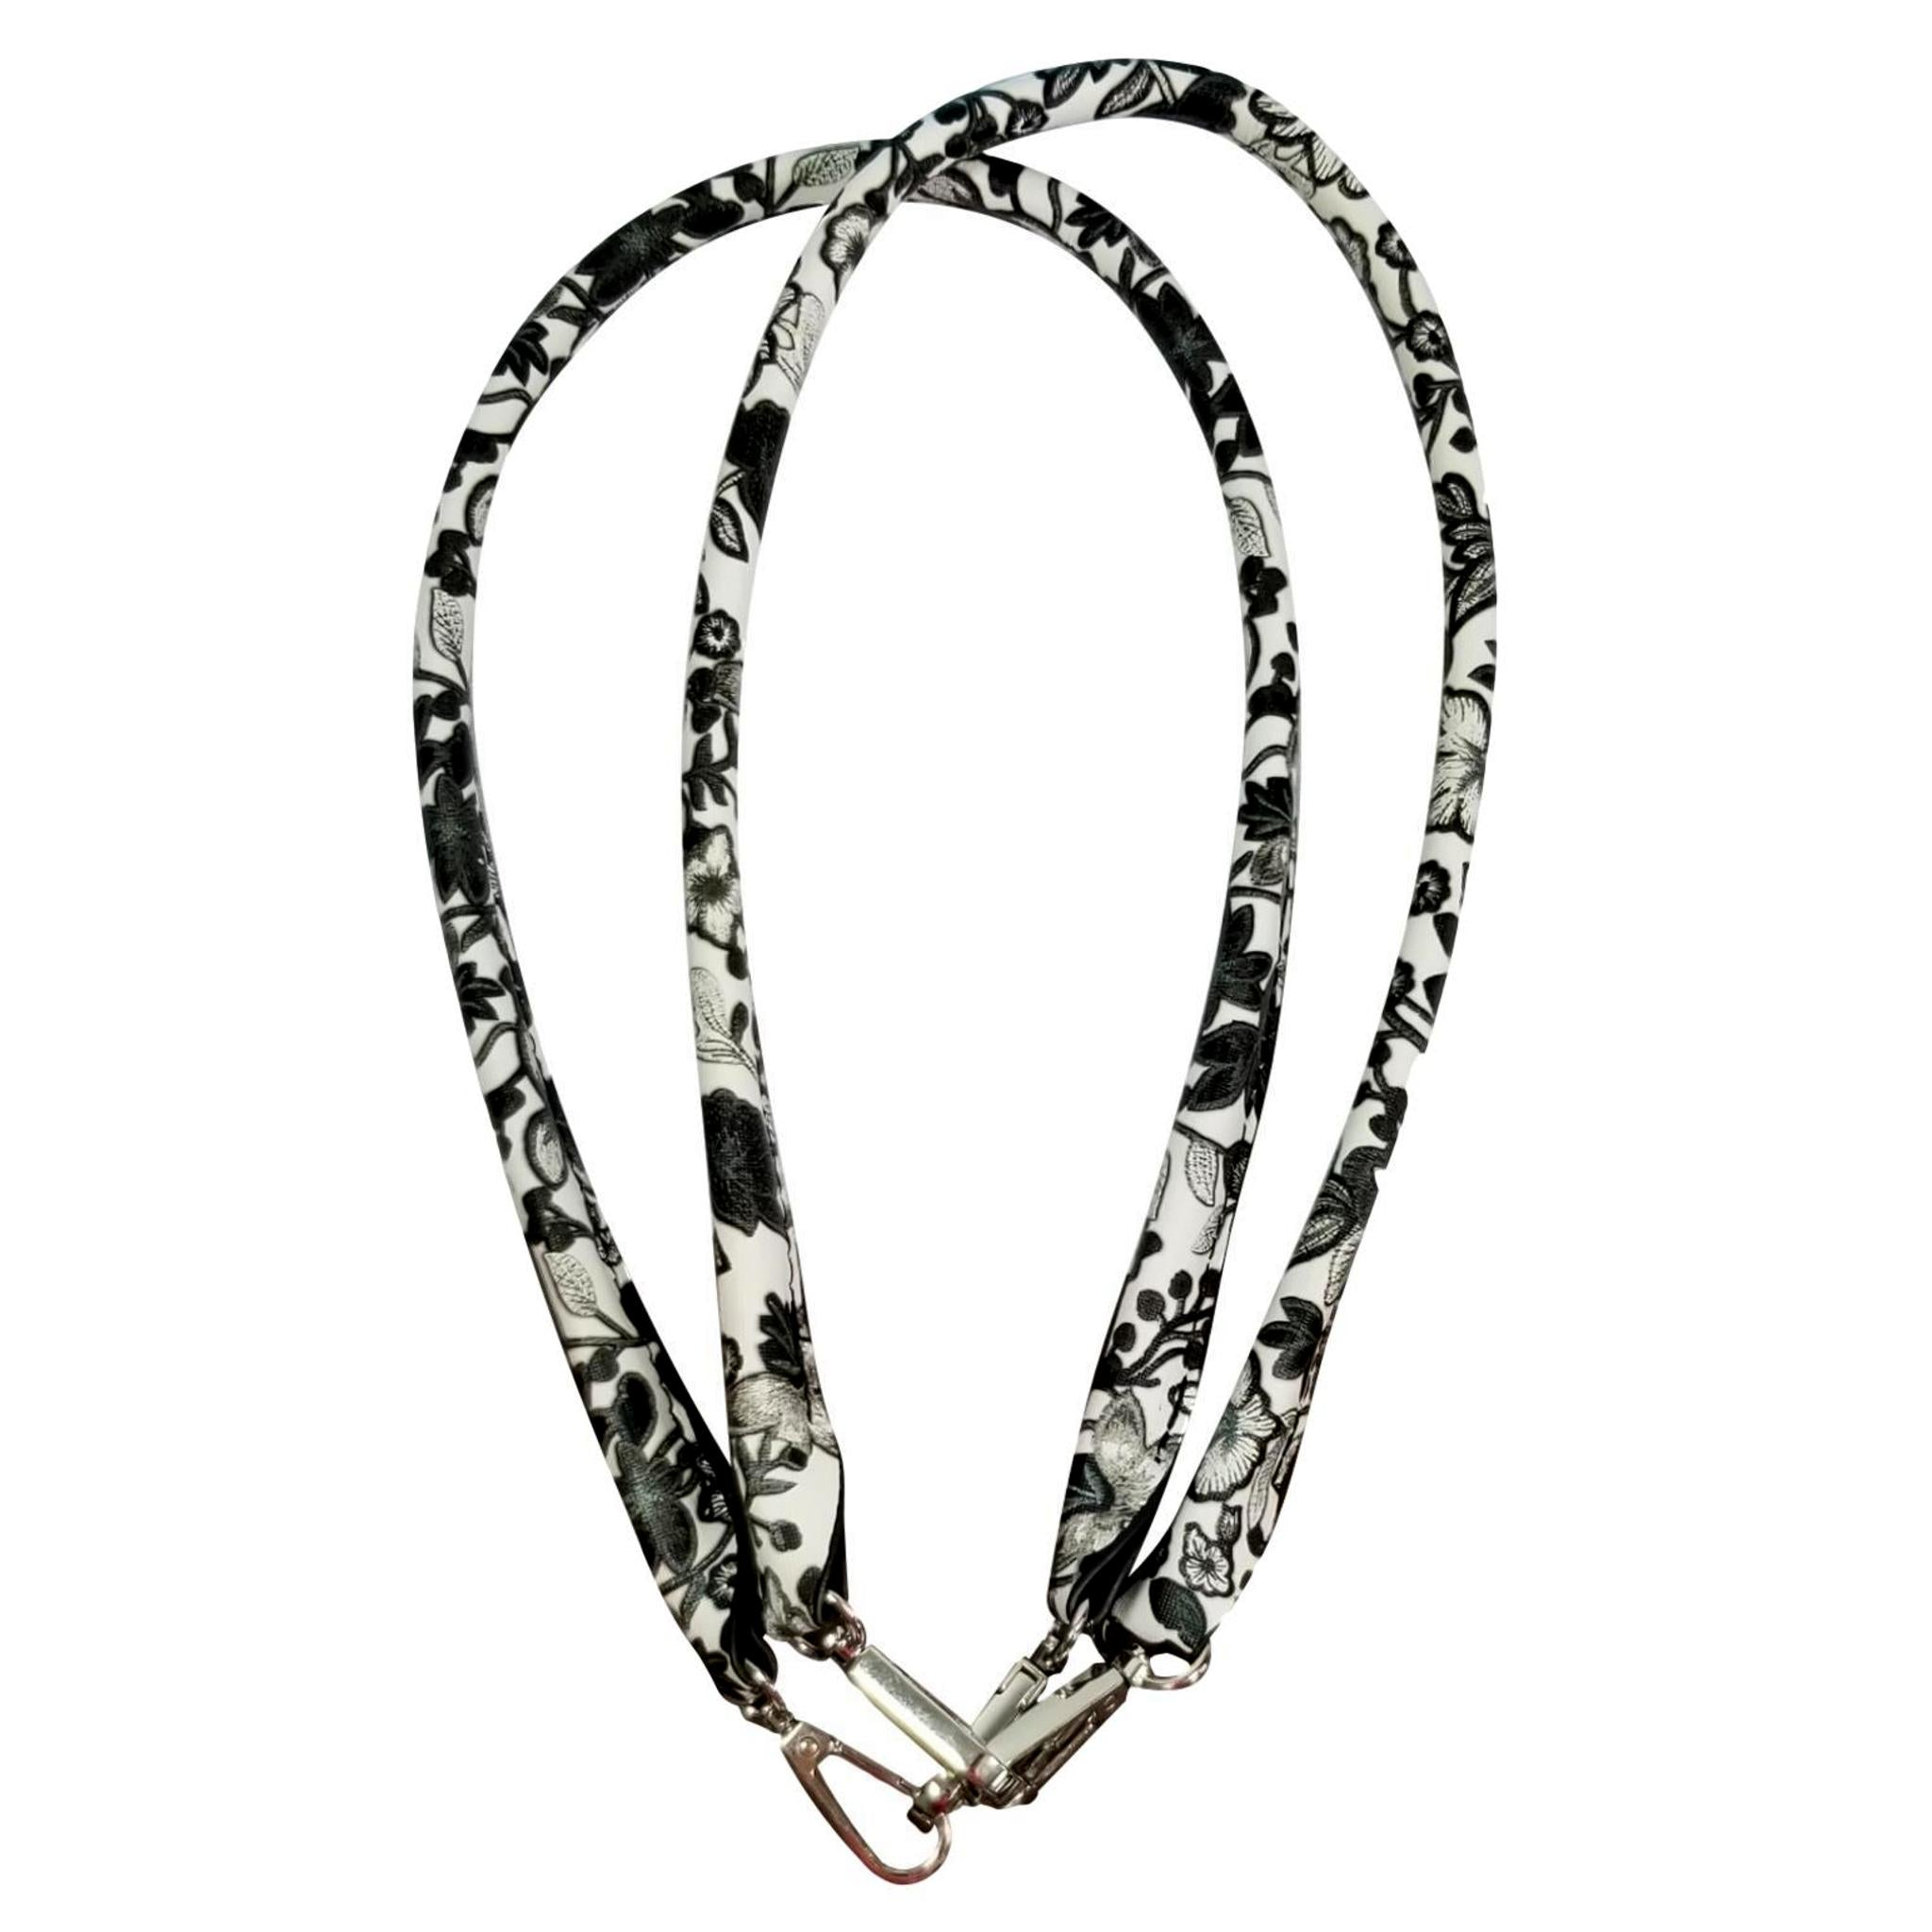 Designer Strap Handle - Floral Black and White